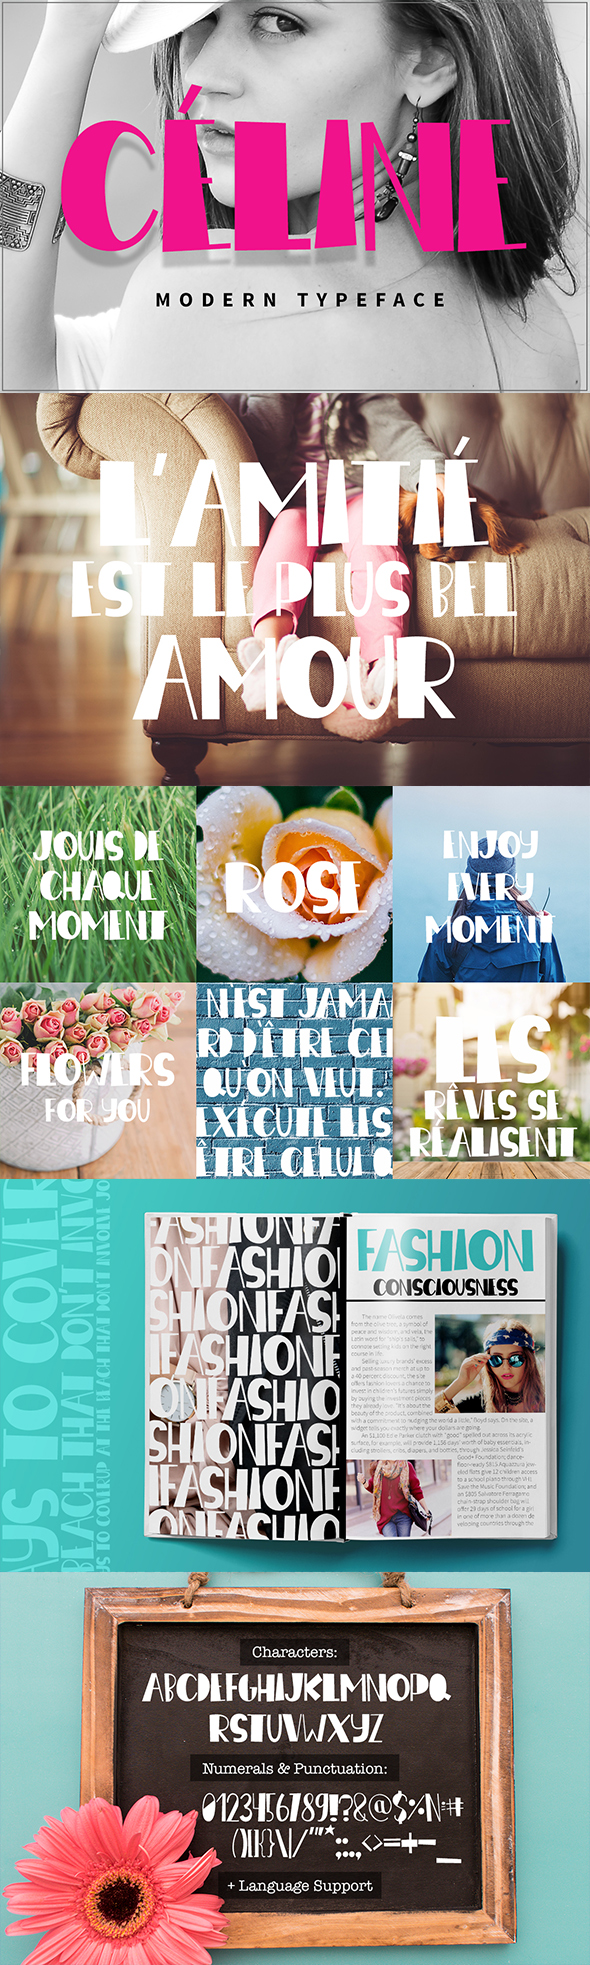 GraphicRiver Ce line Modern Typeface 20809948